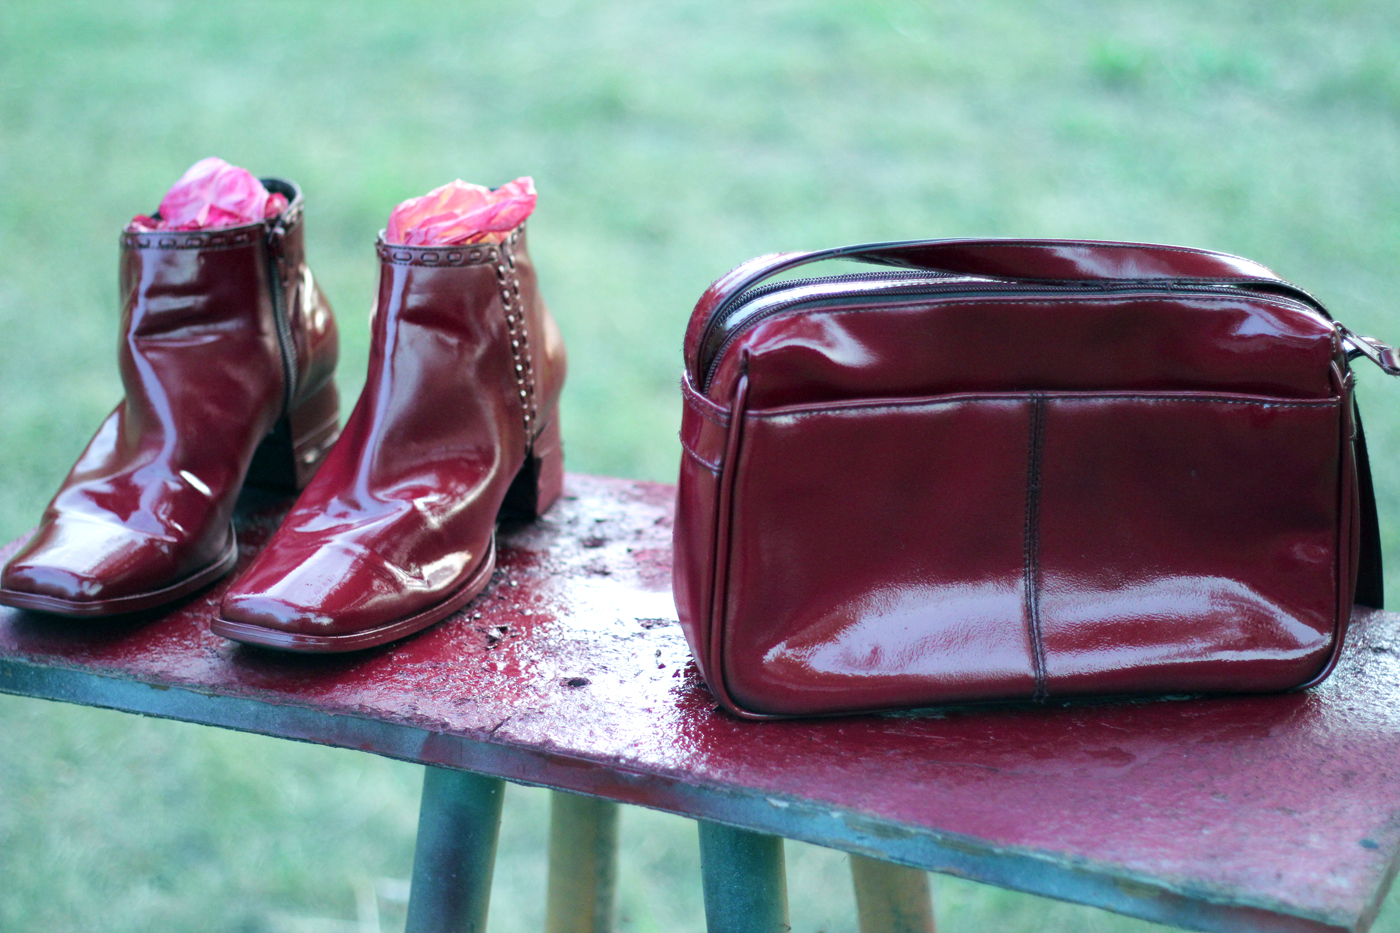 trick oxblood upcycle re purposing thrifted handbag and shoes. Black Bedroom Furniture Sets. Home Design Ideas